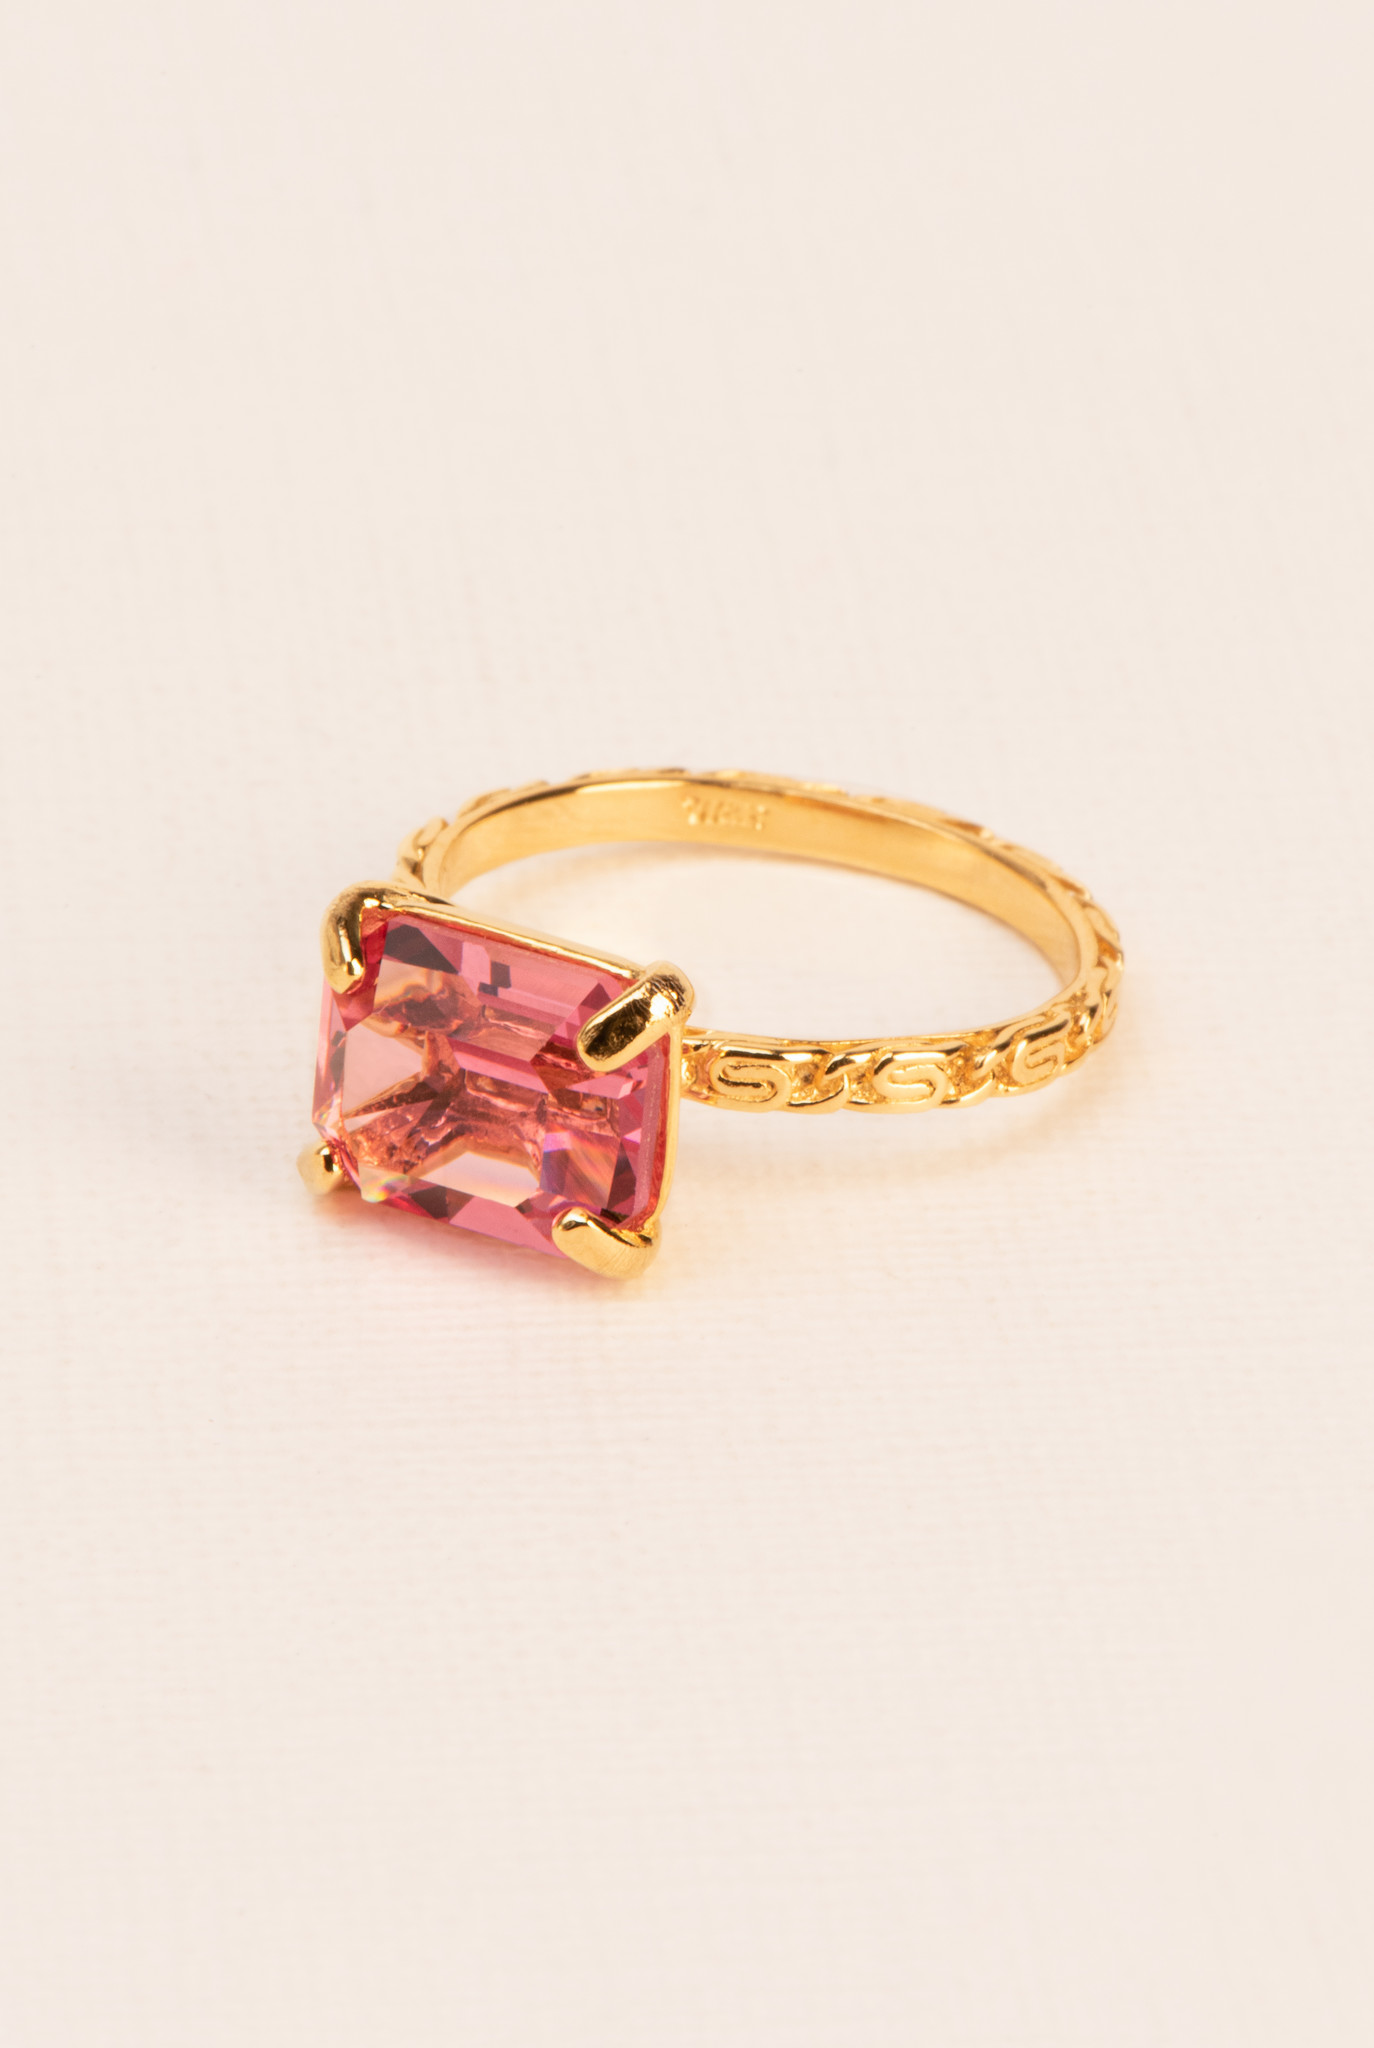 Textured ring with rose crystal gold plated